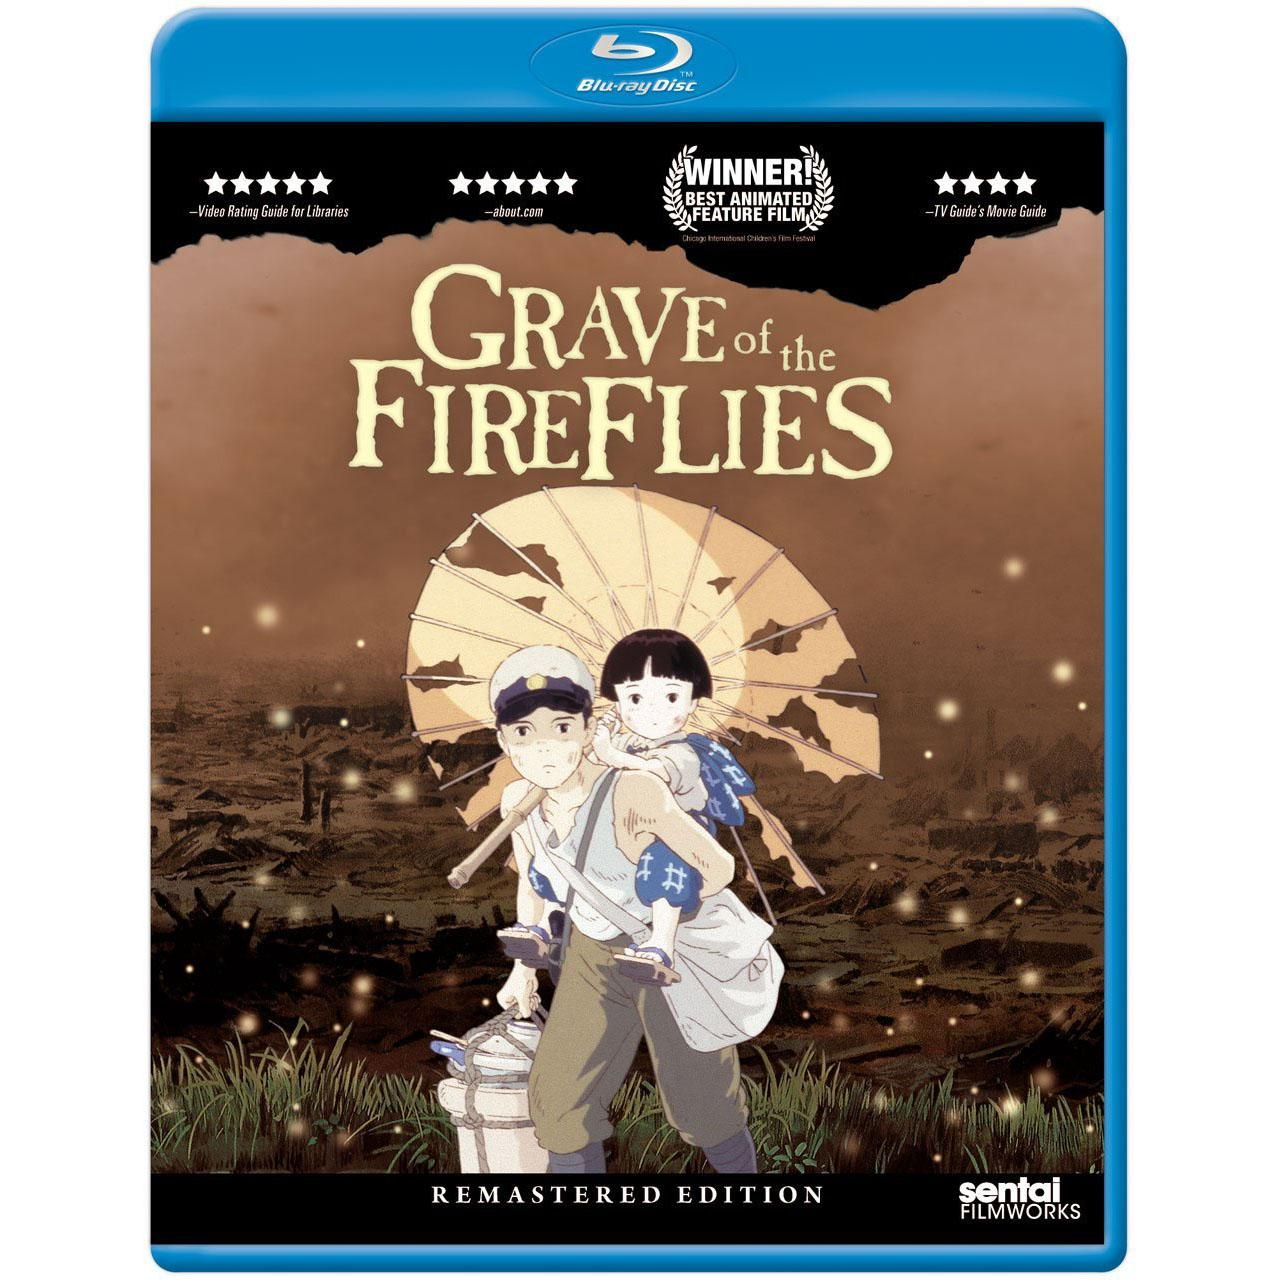 Grave of the Fireflies Remastered Edition Blu-ray for $10.99